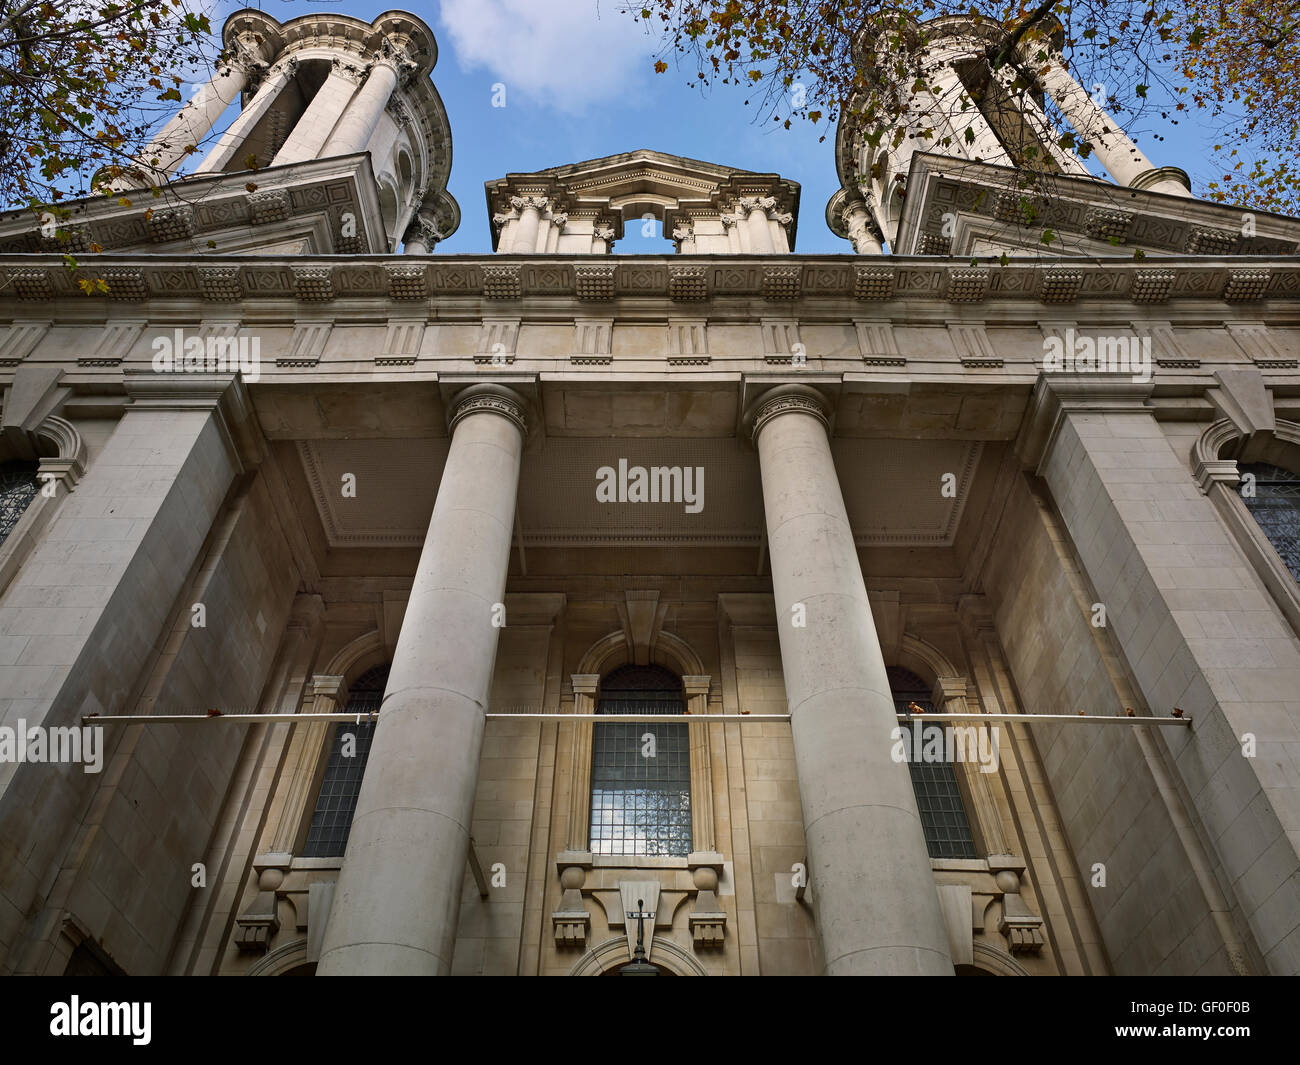 St John's Smith Square. South front portico; by Thomas Archer between 1713 and 1728. - Stock Image